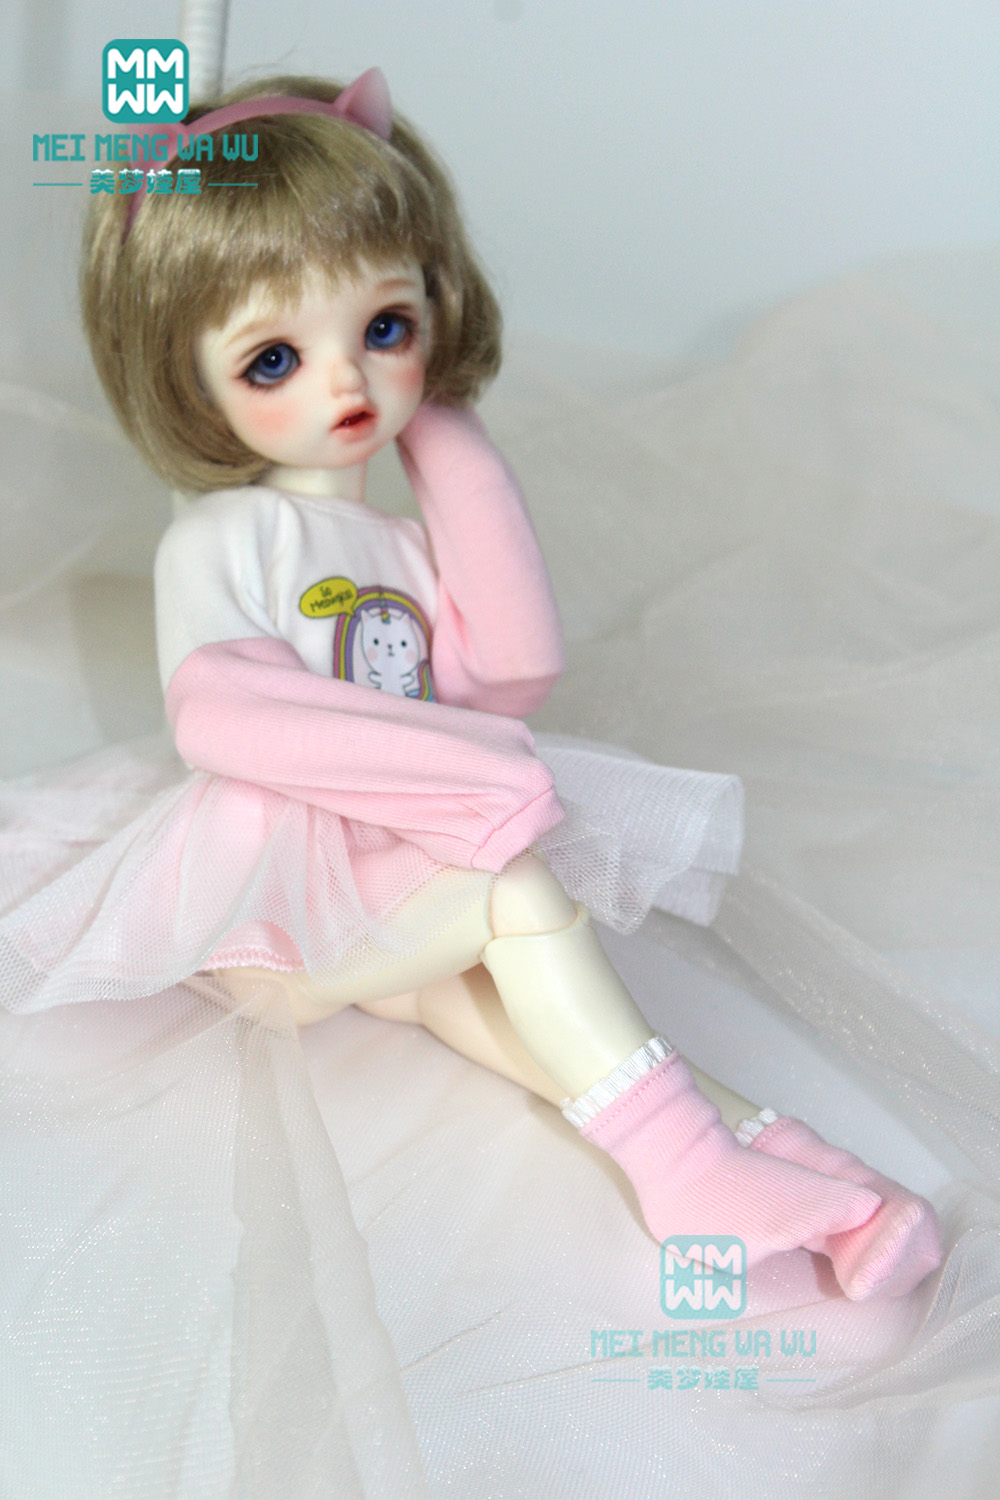 BJD Dolls Accessories Clothes For Dolls Fits 27cm-30cm 1/6 YOSD MYOU Bjd Dolls Fashion Wearing Jumpers, Yarn Skirt, Socks